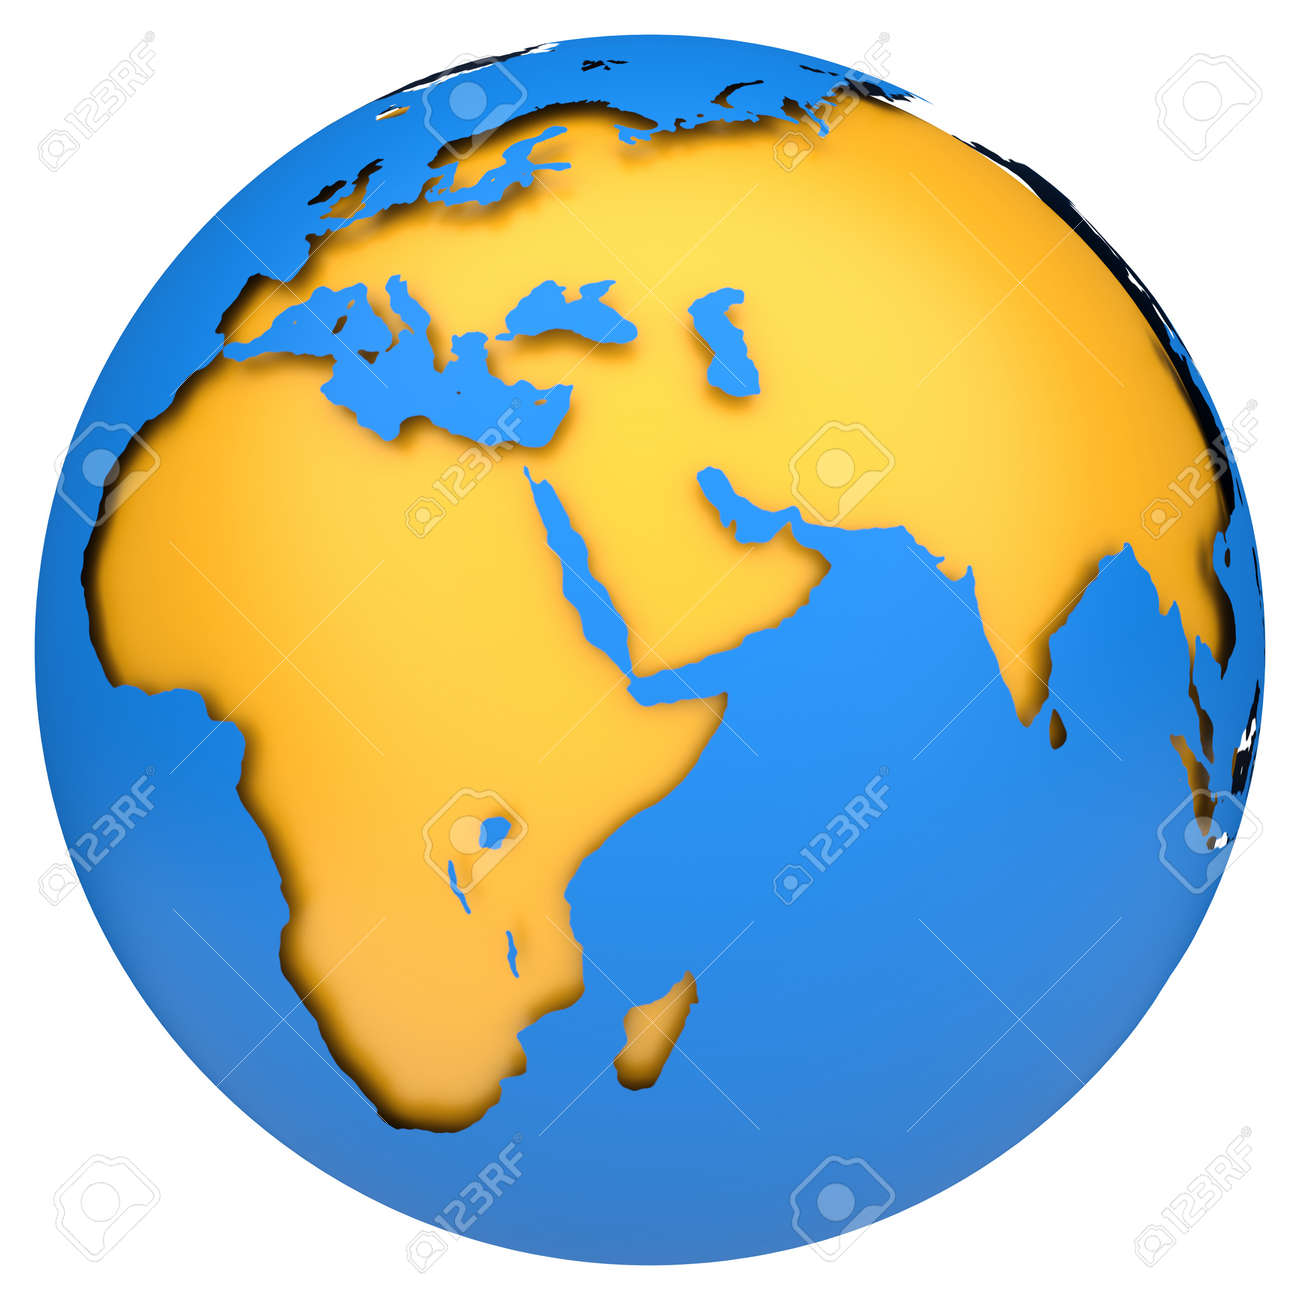 Earth Globe Map Side Of Africa And Europe 3d Image Stock Photo